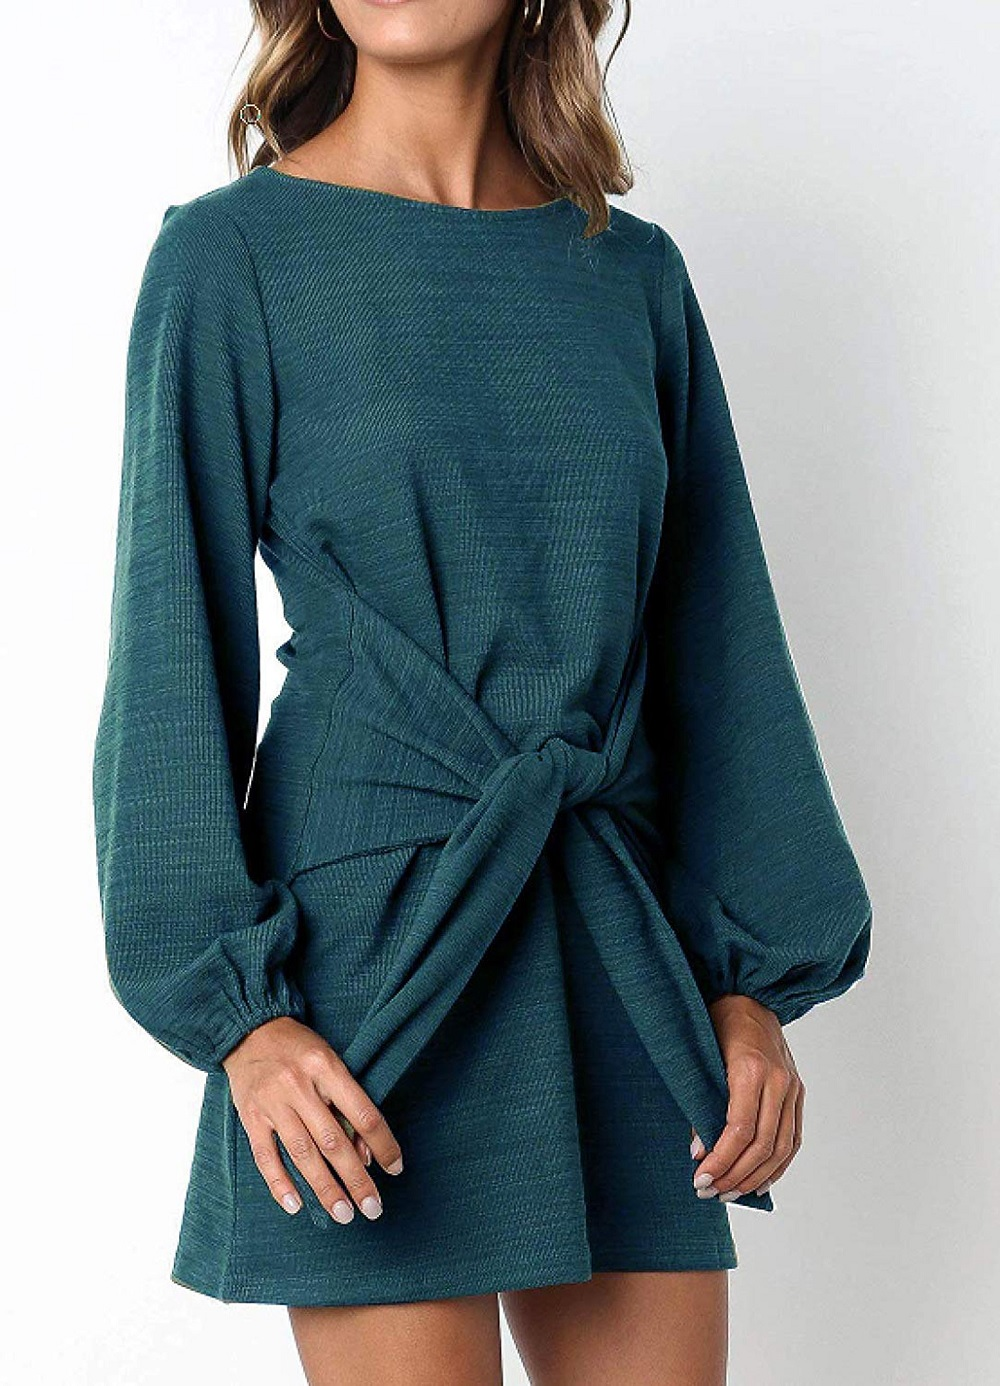 amazon-sweater-dress.jpg